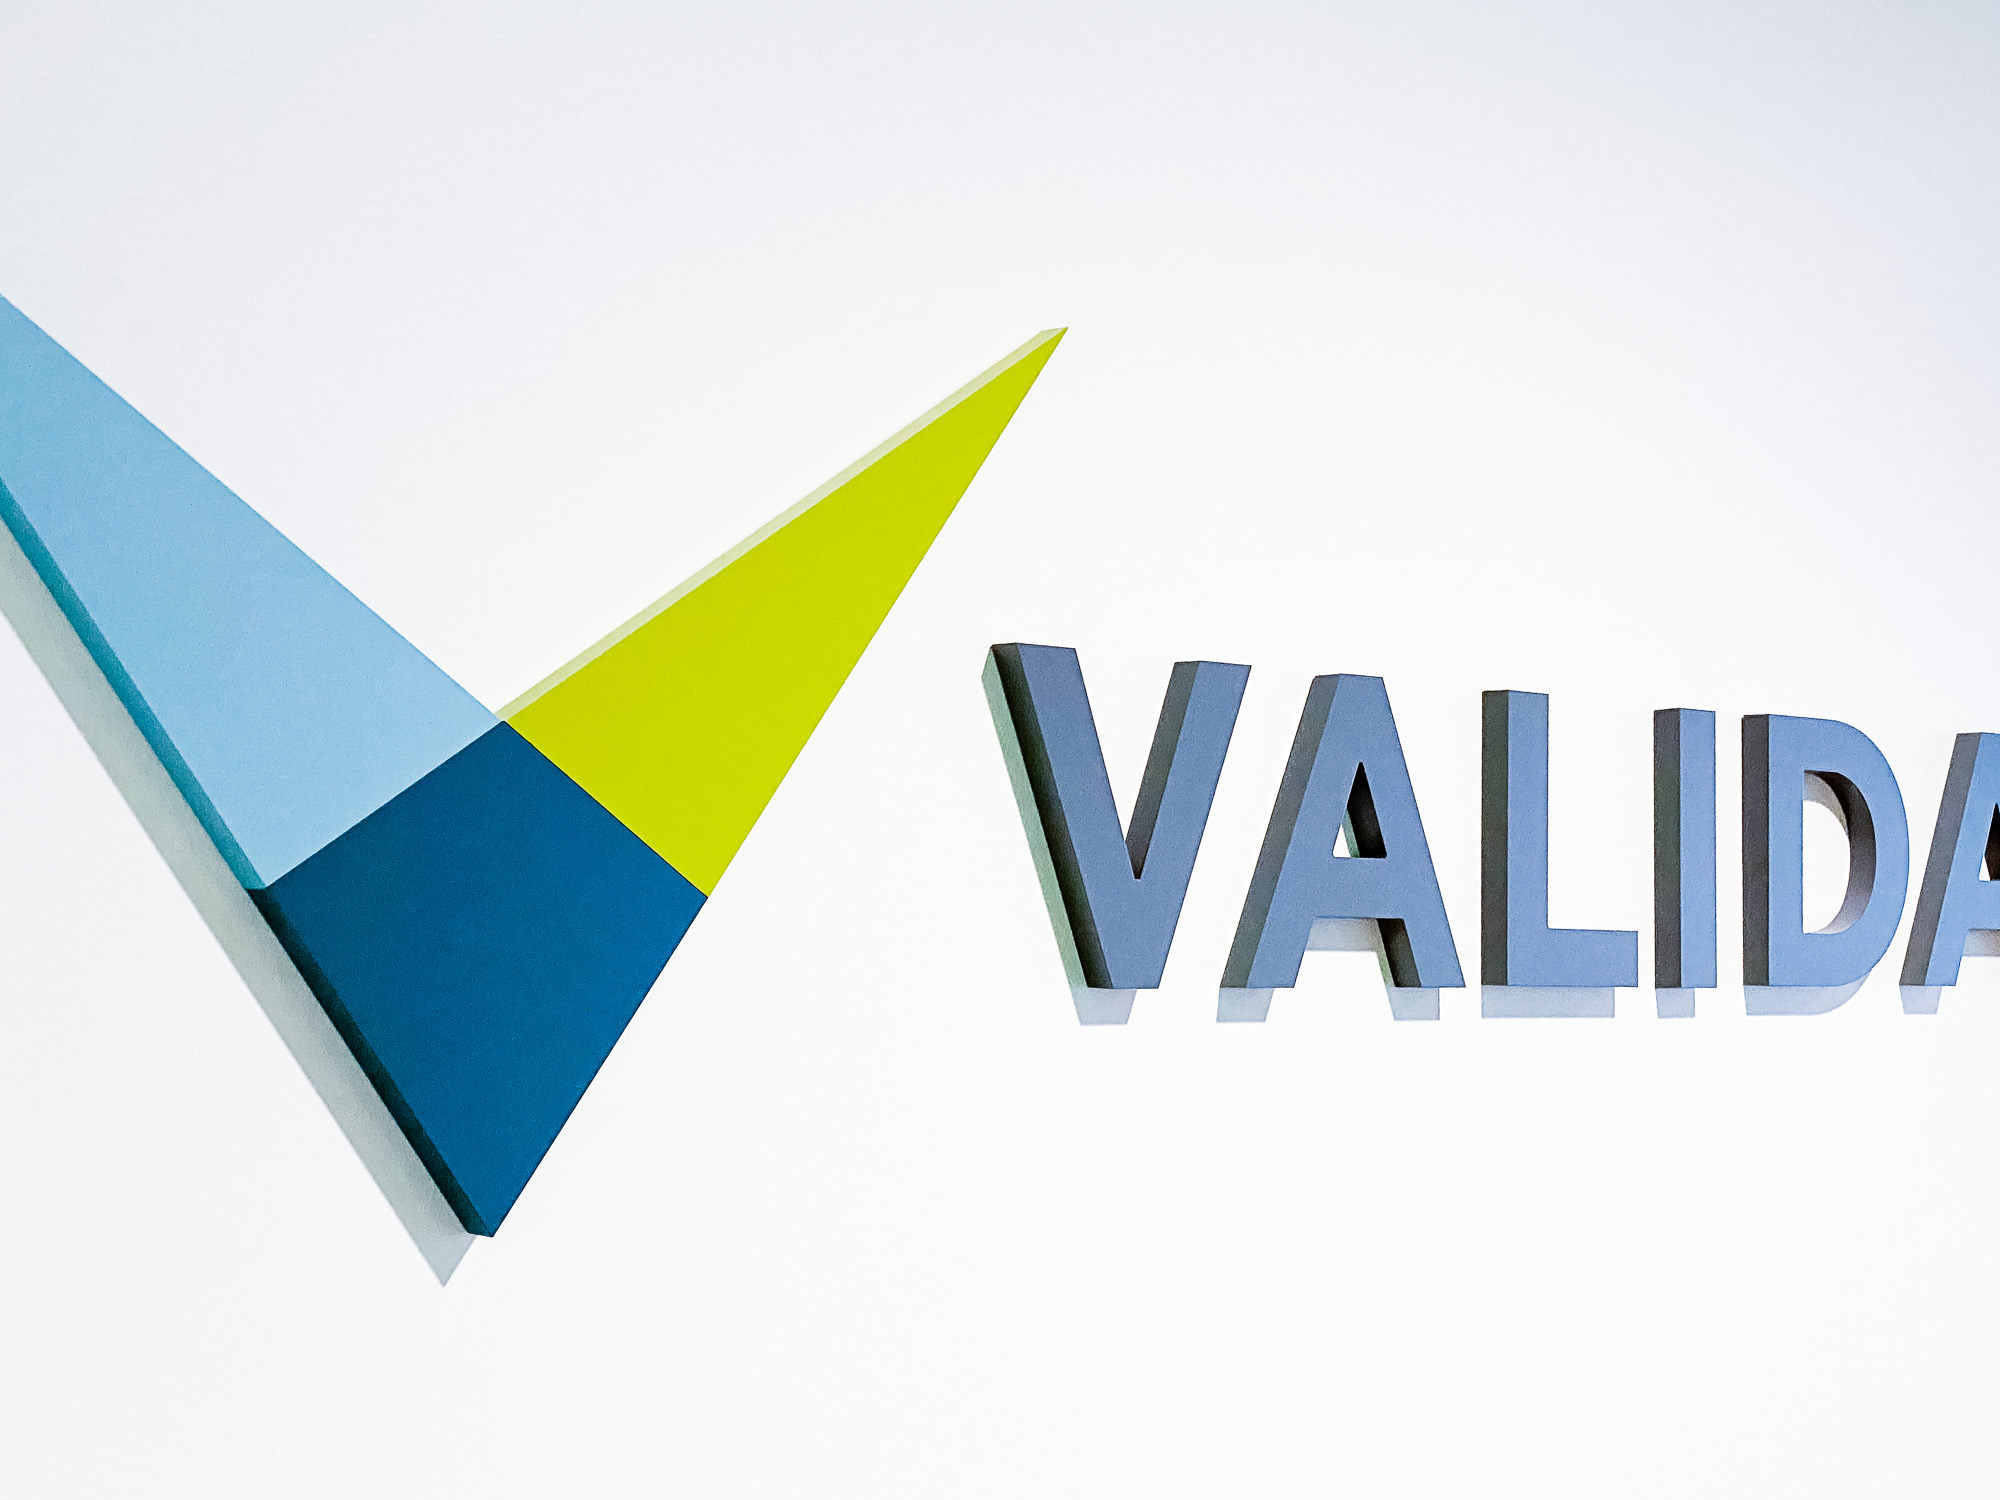 Full color dimensional logo on white wall for the lobby of Validant, a San Francisco based company that delivers end-to-end quality, compliance, and regulatory consulting service for healthcare companies around the world.